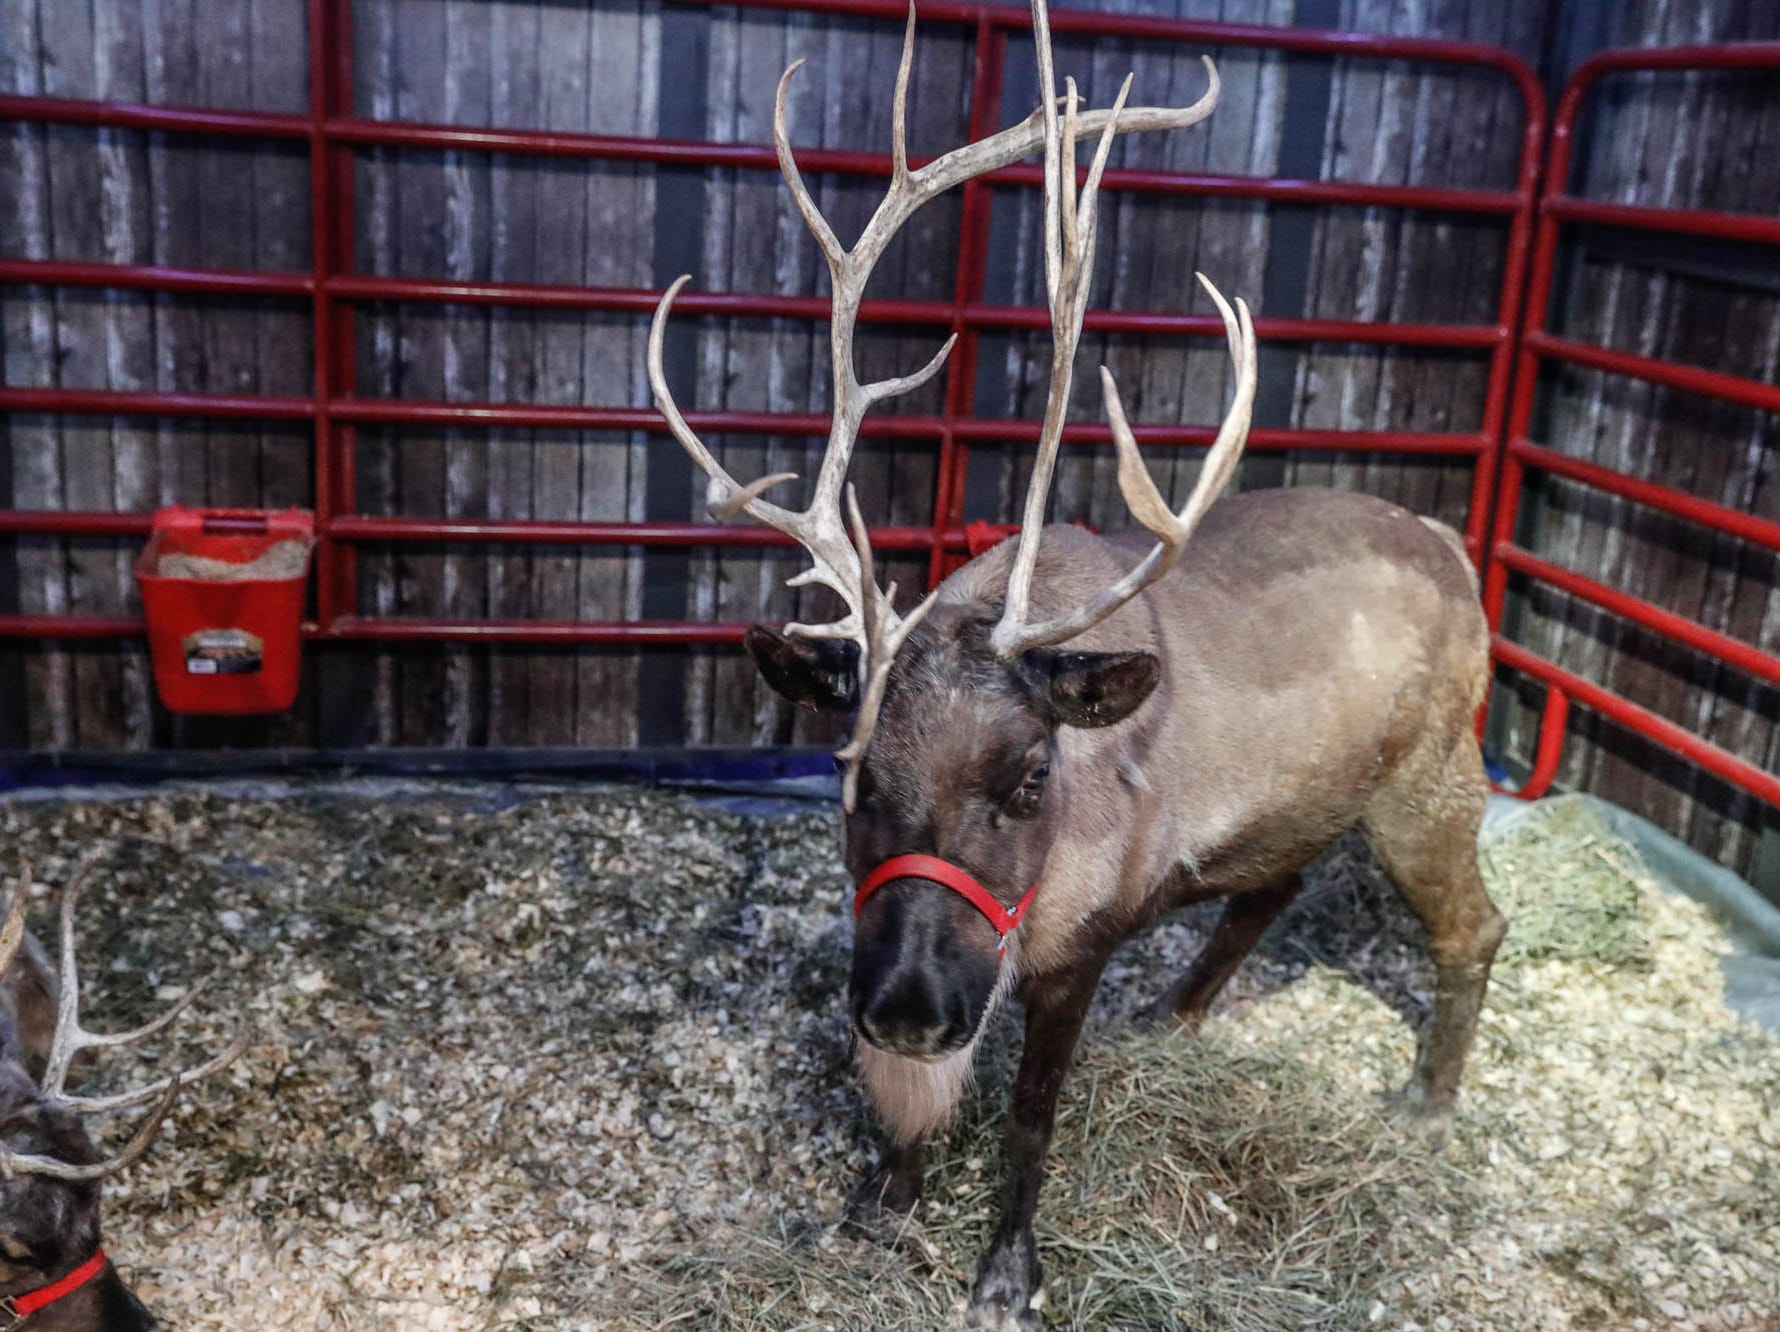 Two reindeer visit with guests during Christmas at the Indianapolis Zoo on Wednesday, Dec. 19, 2018.